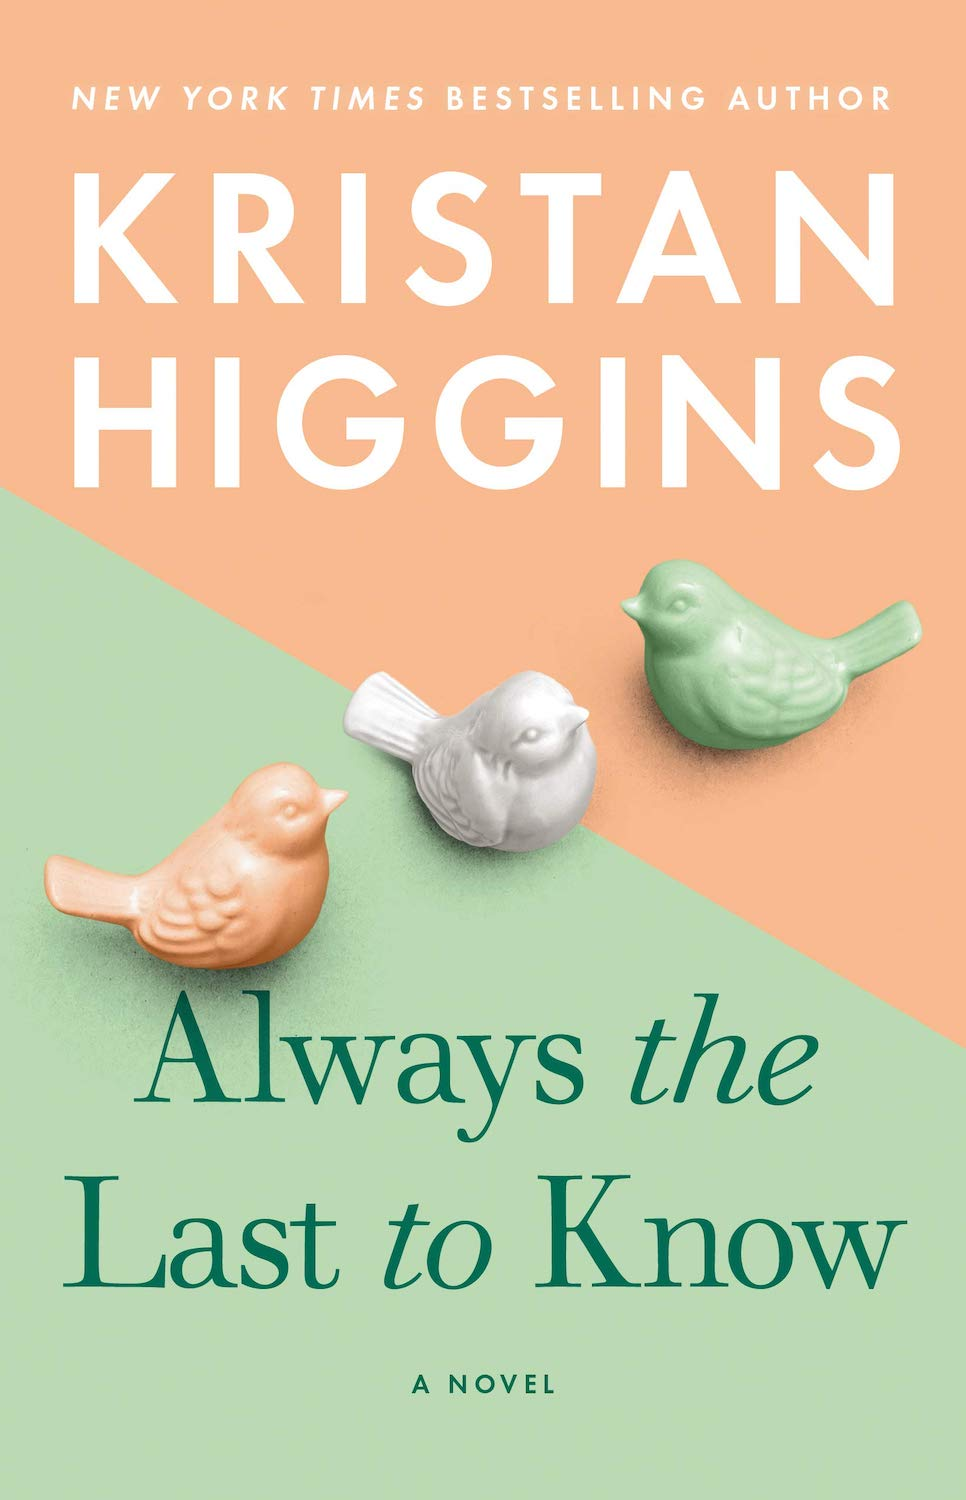 Don't DIY: A Guest Post by Kristan Higgins